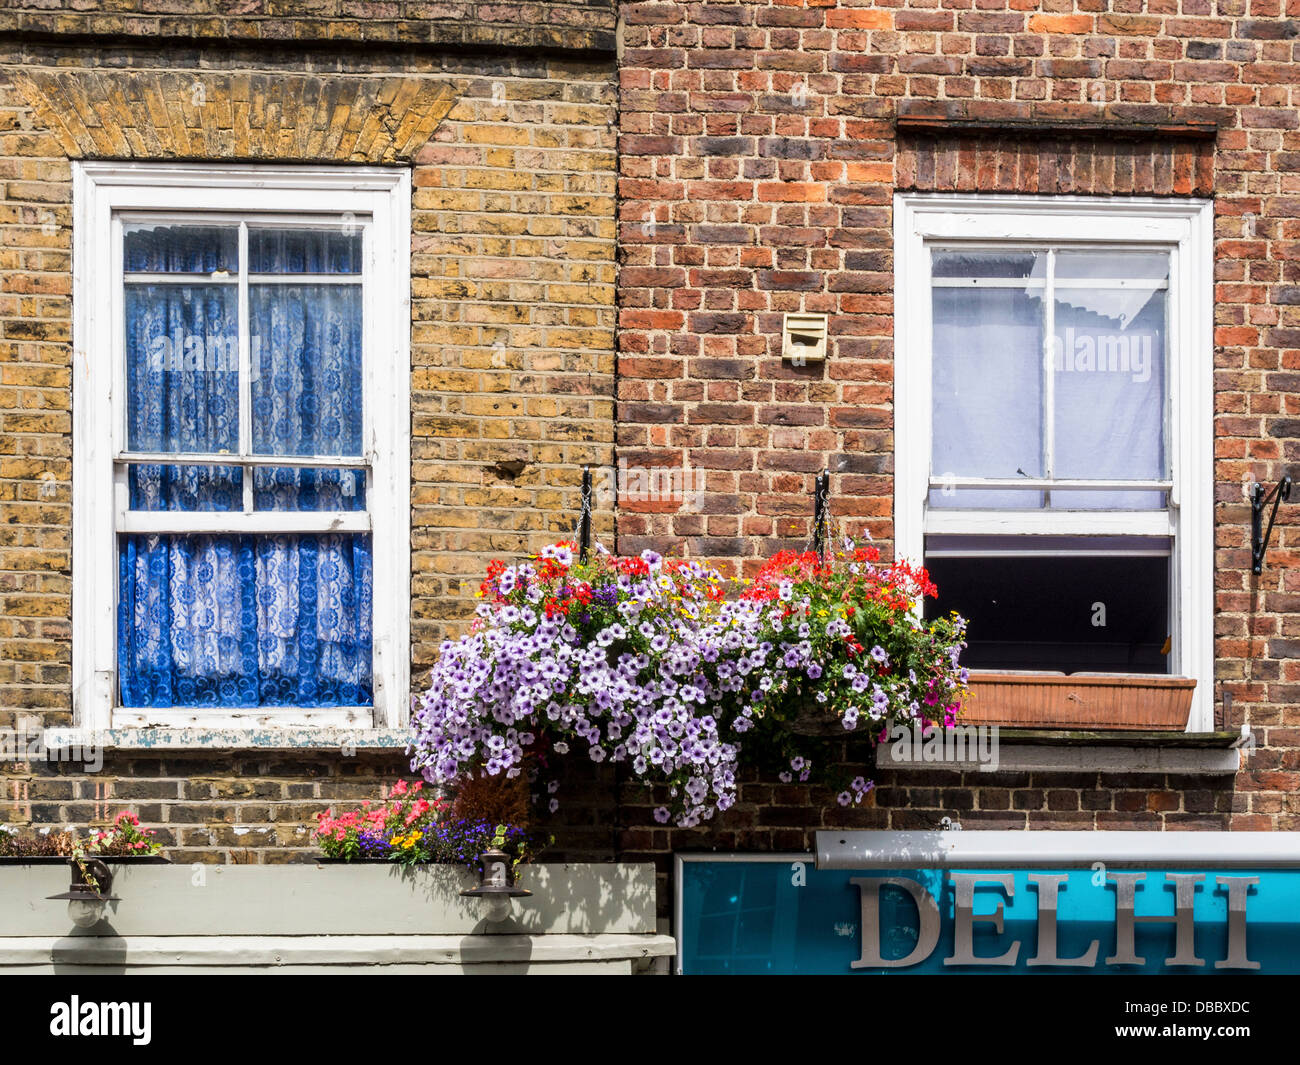 Window with blue net curtains and flower baskets above an Indian restaurant sign in Church Street. Twickenham - Stock Image